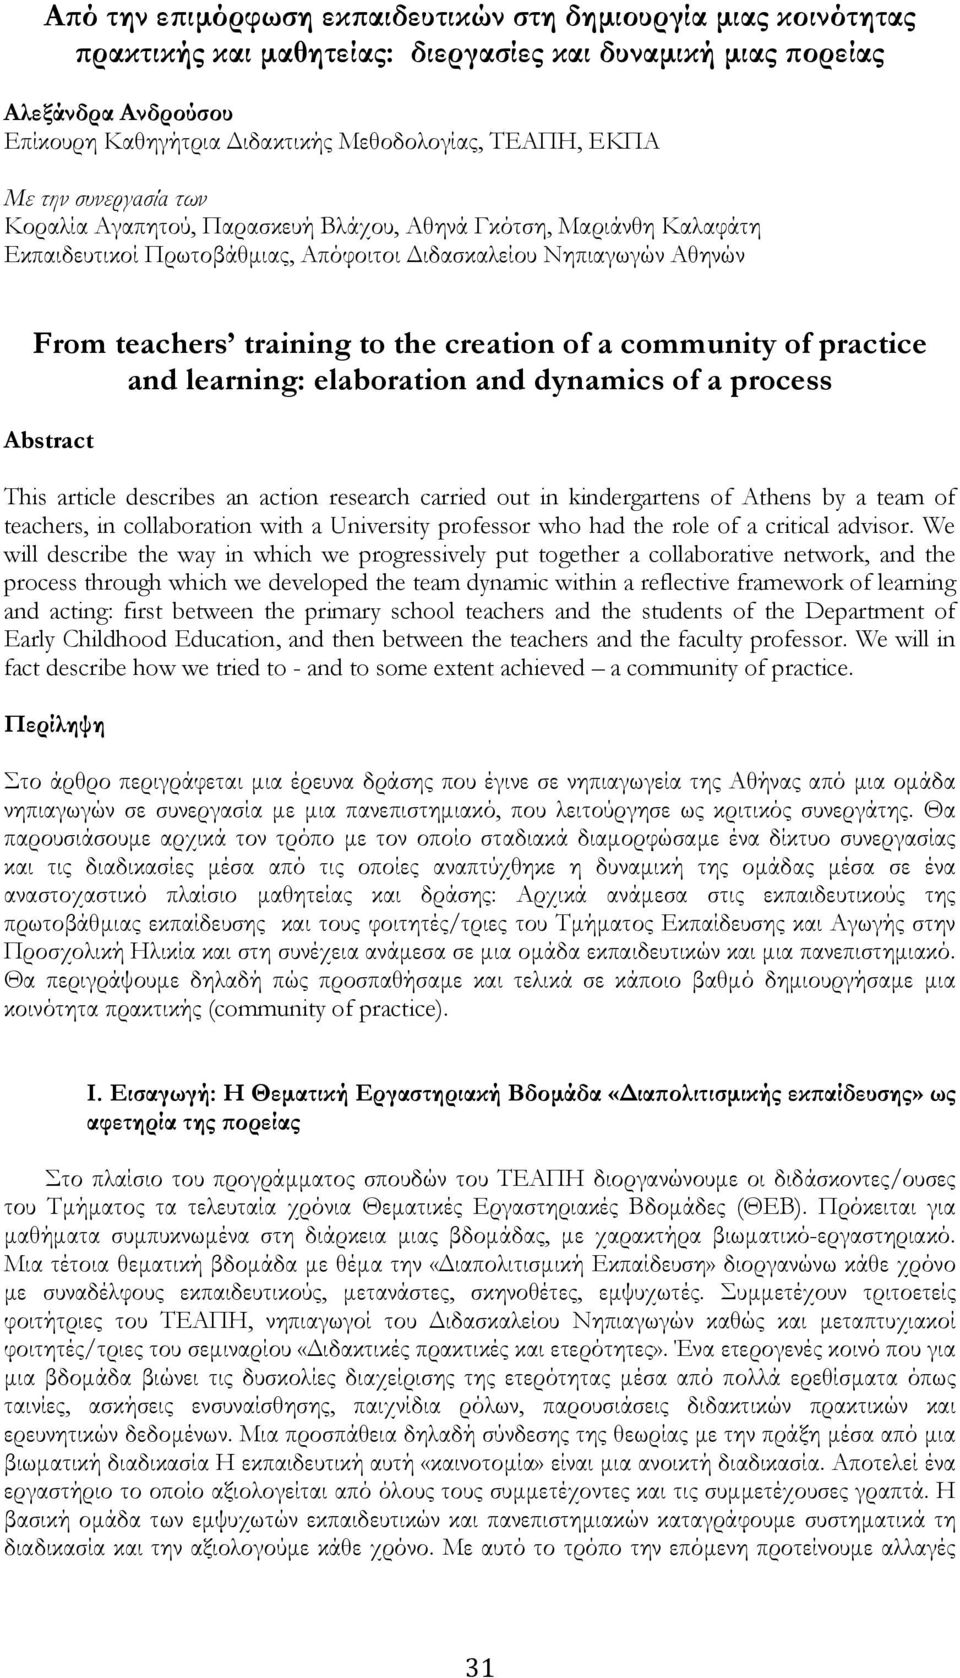 creation of a community of practice and learning: elaboration and dynamics of a process Abstract This article describes an action research carried out in kindergartens of Athens by a team of